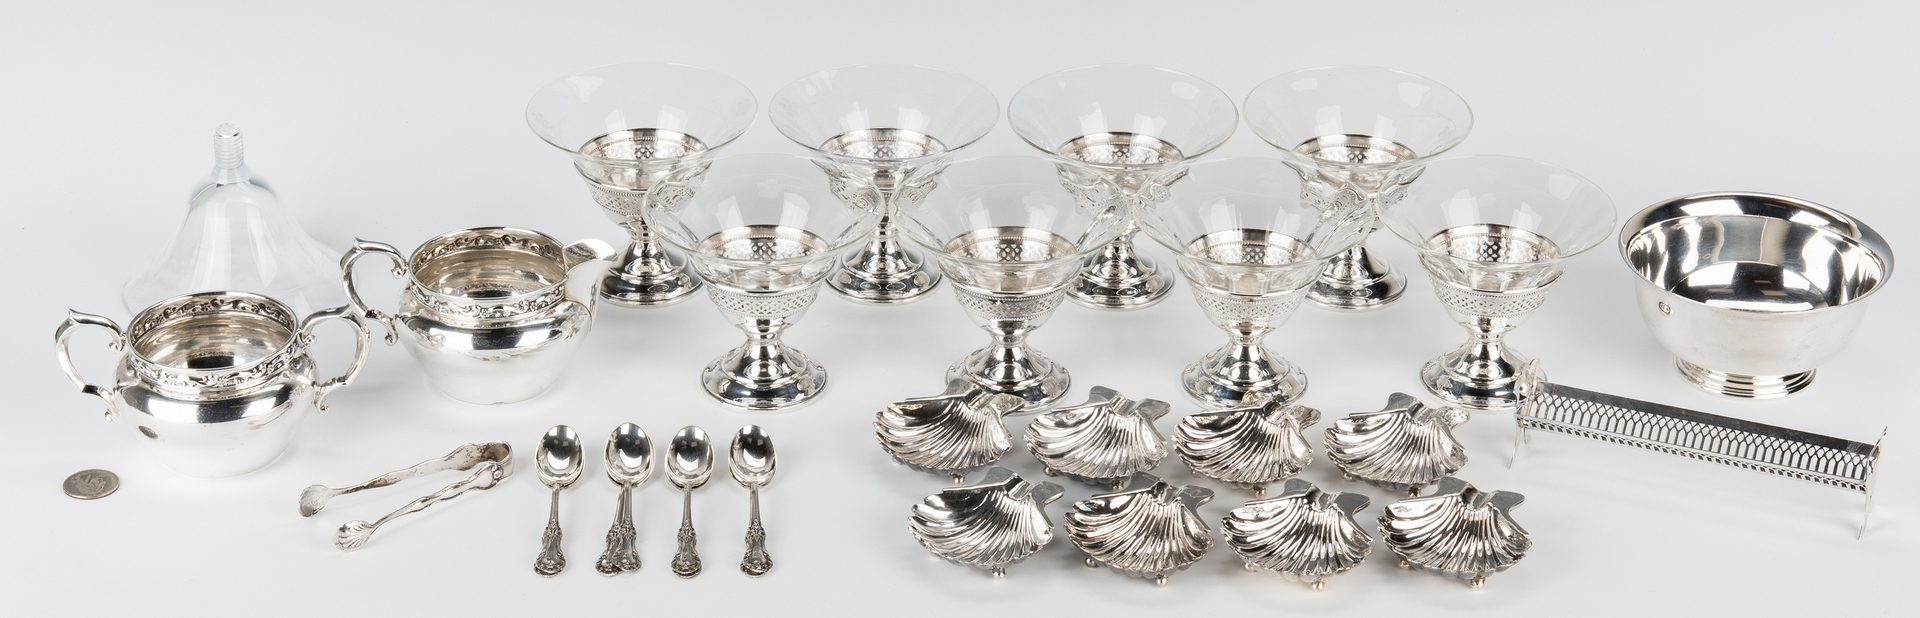 Lot 845: Group Sterling table items incl. Sanborns, 38 items